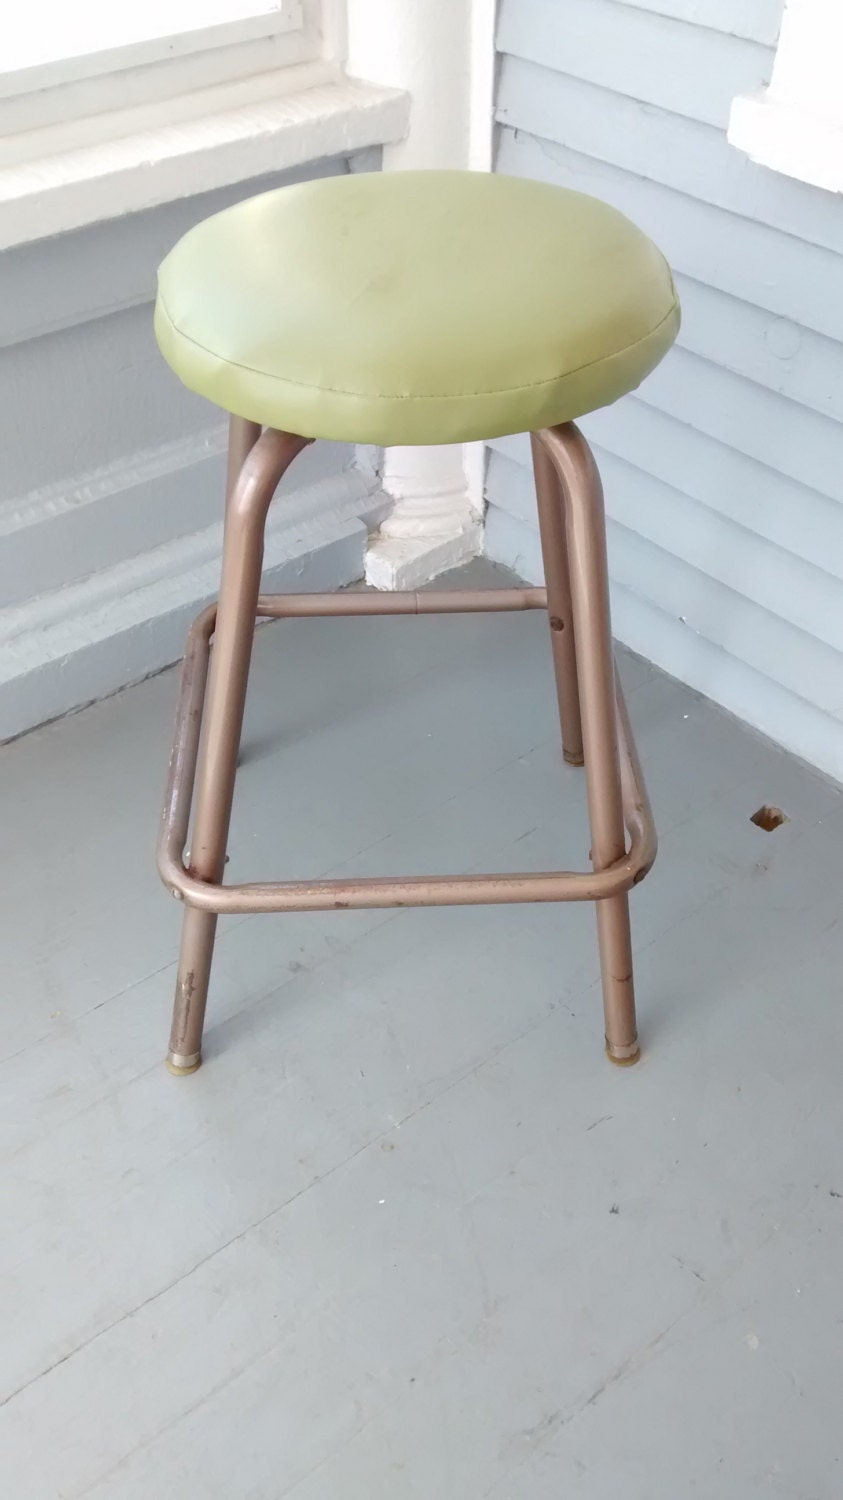 28 Vintage Green Workshop Stool With 1930 S  : ilfullxfull970232262qf5v from scottkrieder.com size 843 x 1500 jpeg 116kB